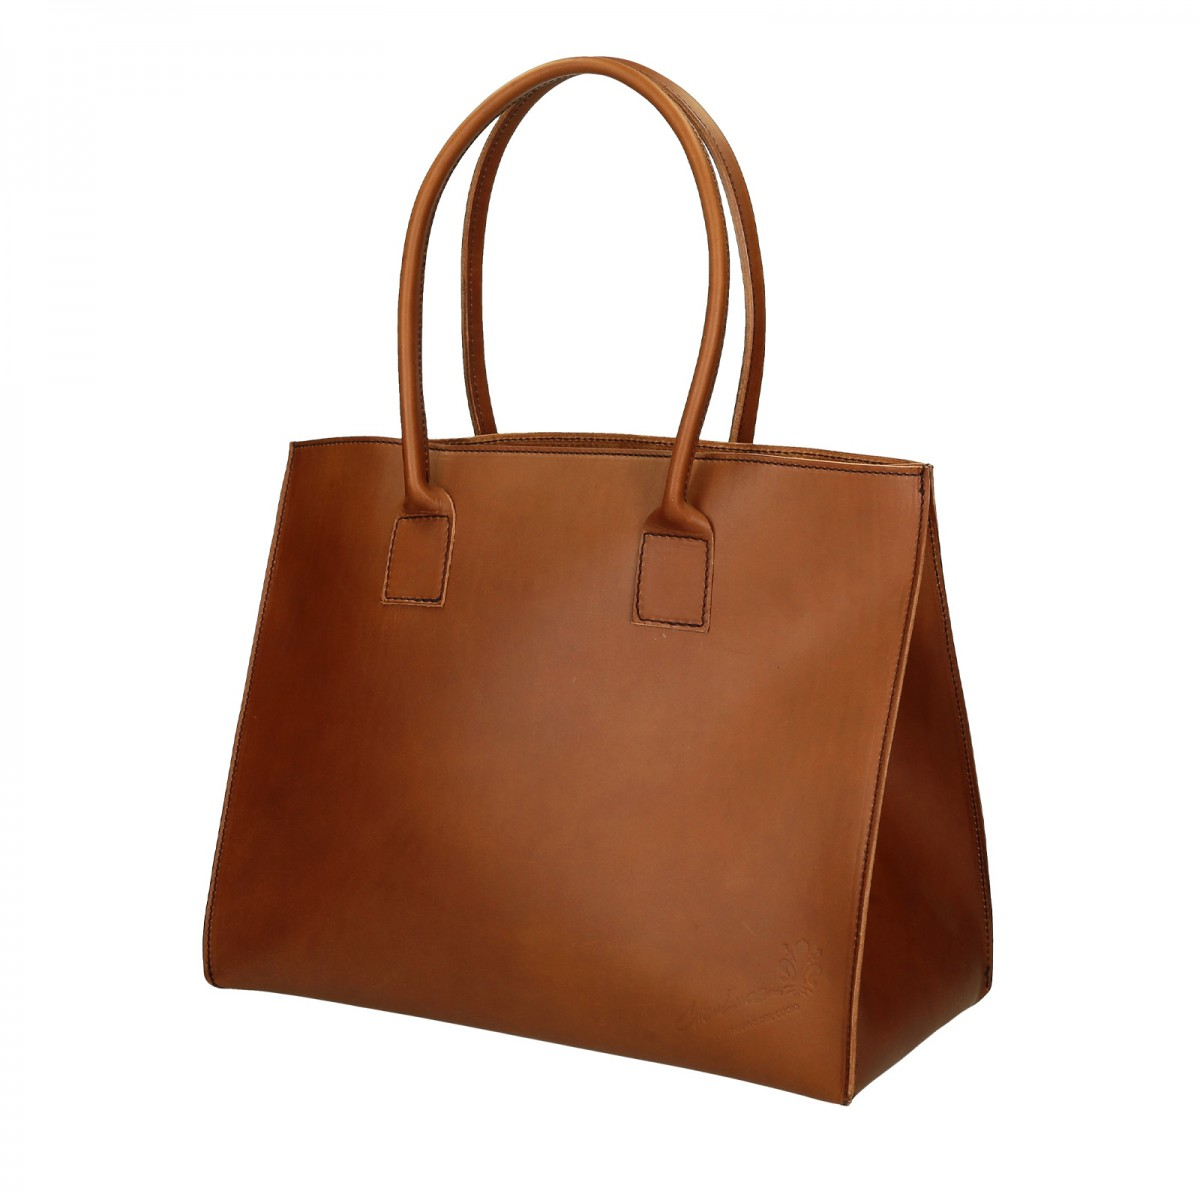 Handmade Tote Bag For Women In Tan Leather Gianluca